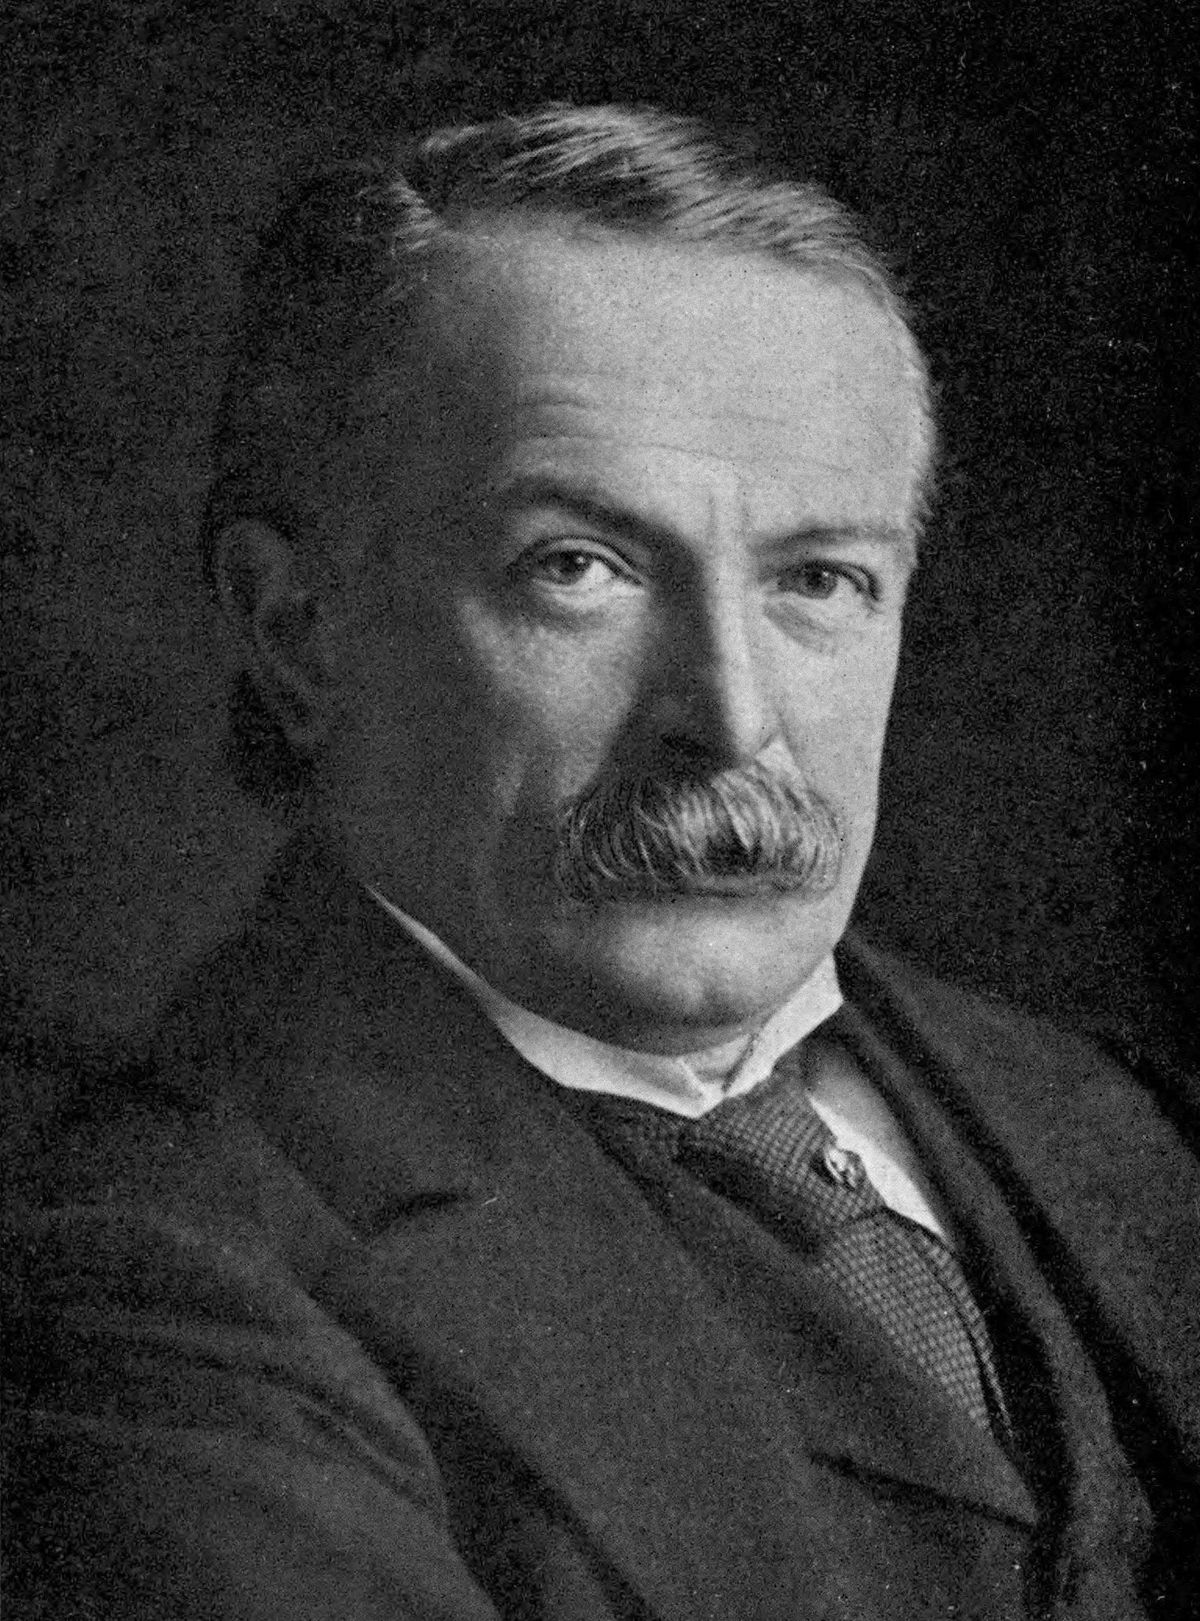 Prime Minister David Lloyd George contracted the disease but survived